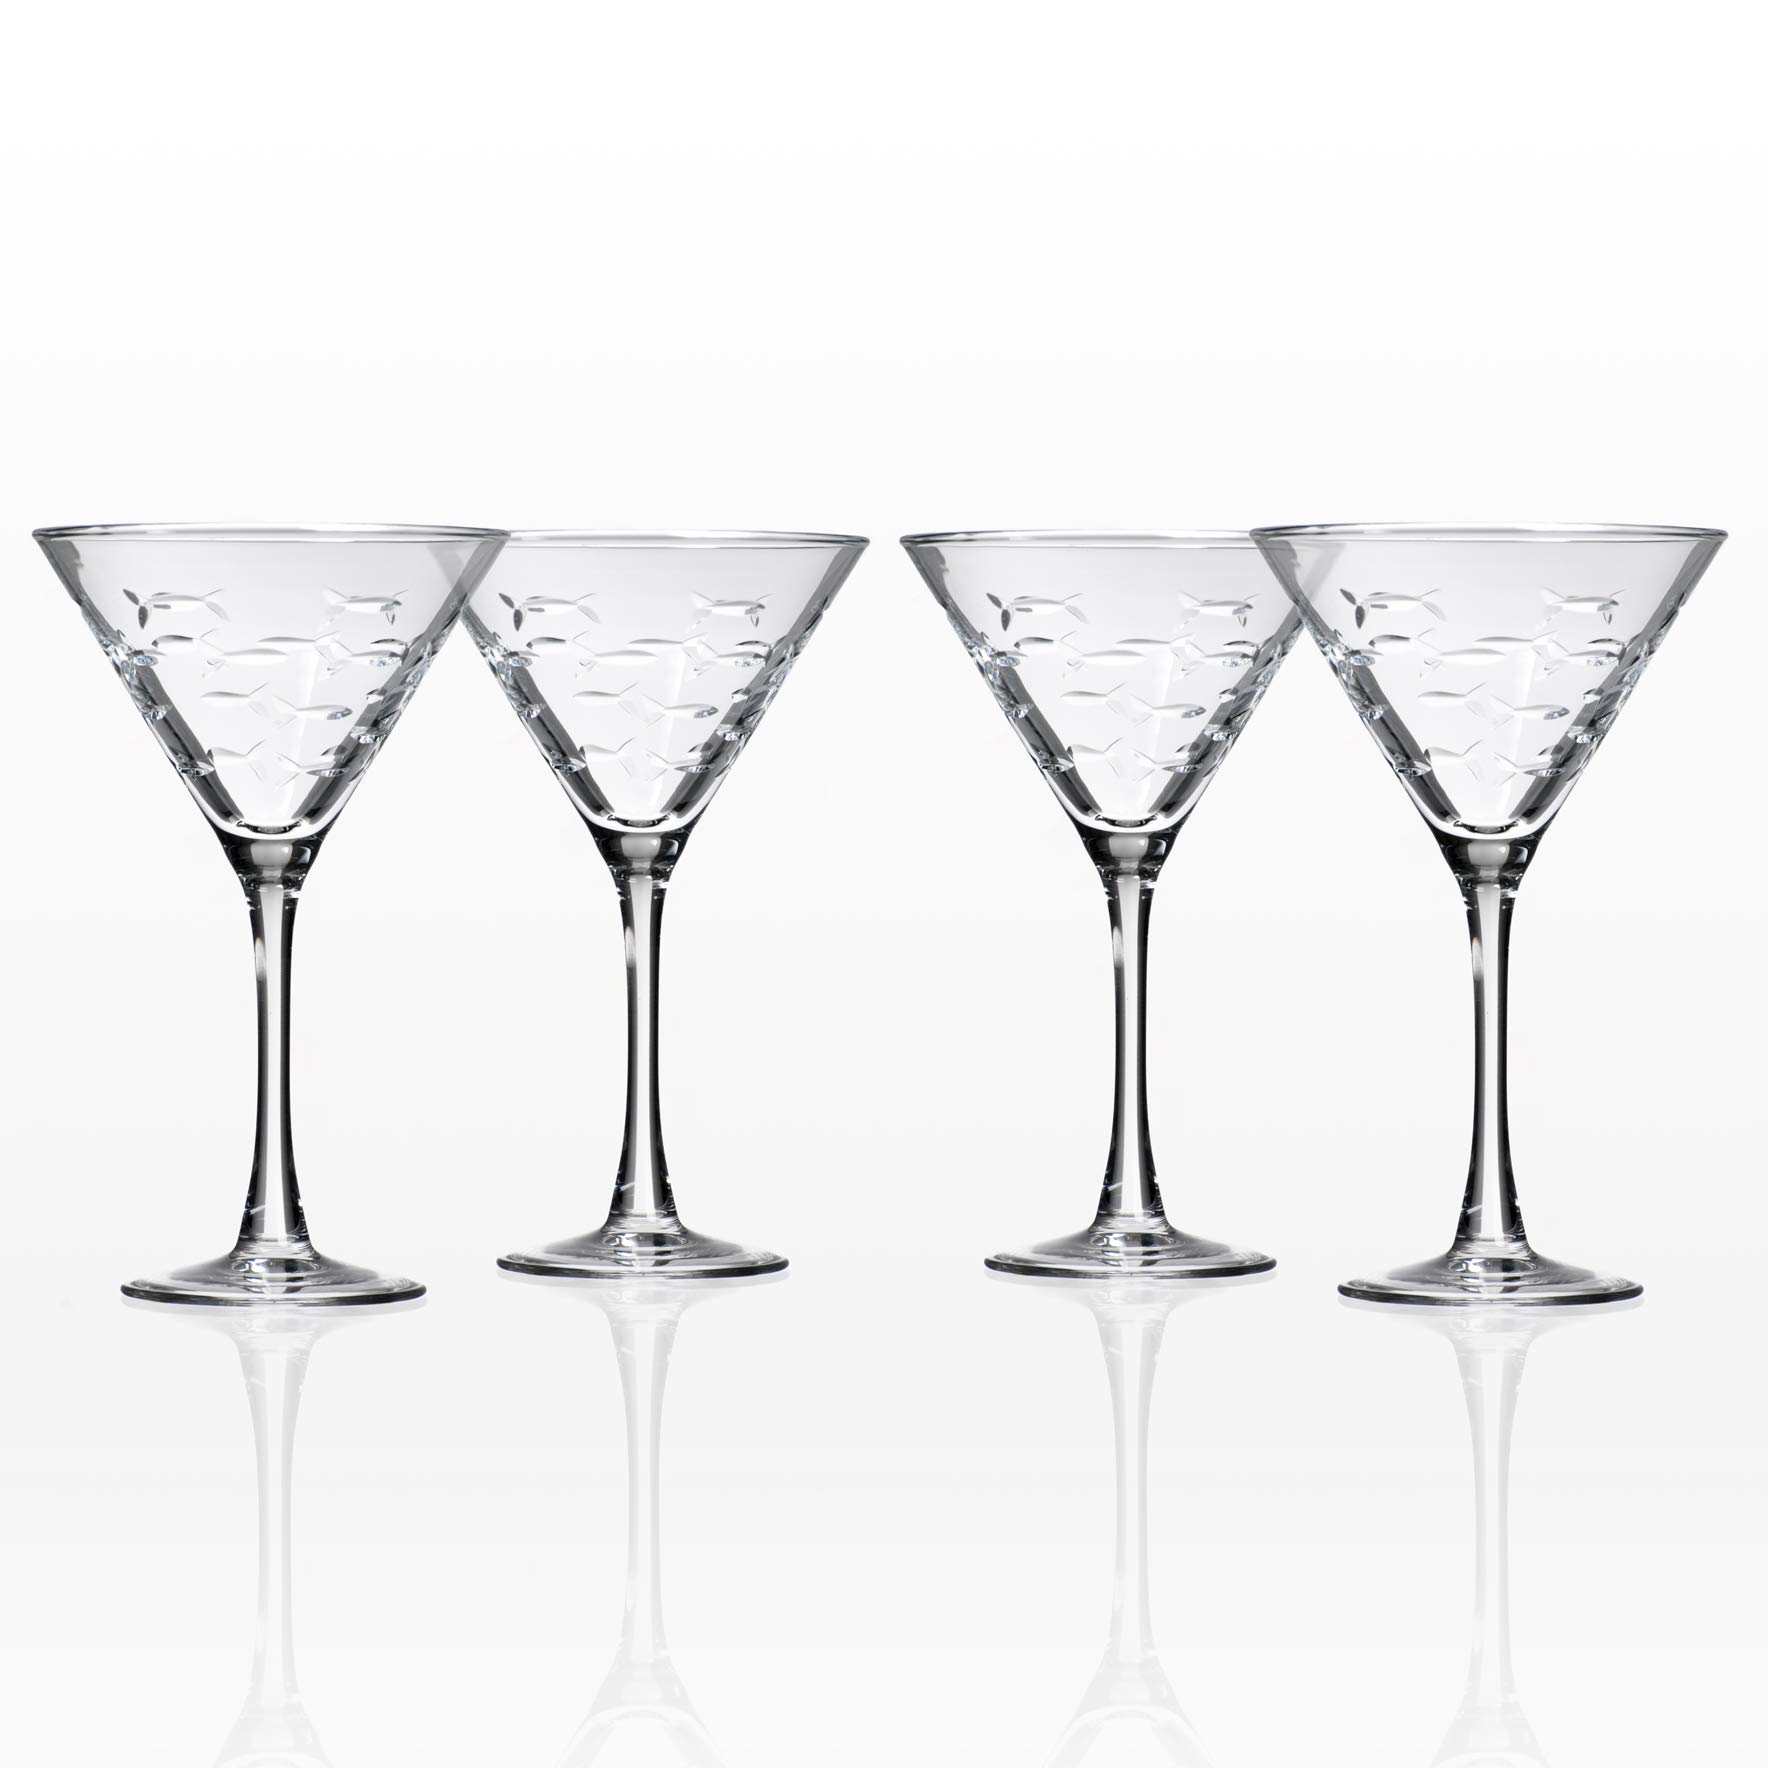 School of Fish Martini Glasses Set of 4 by Rolf Glass